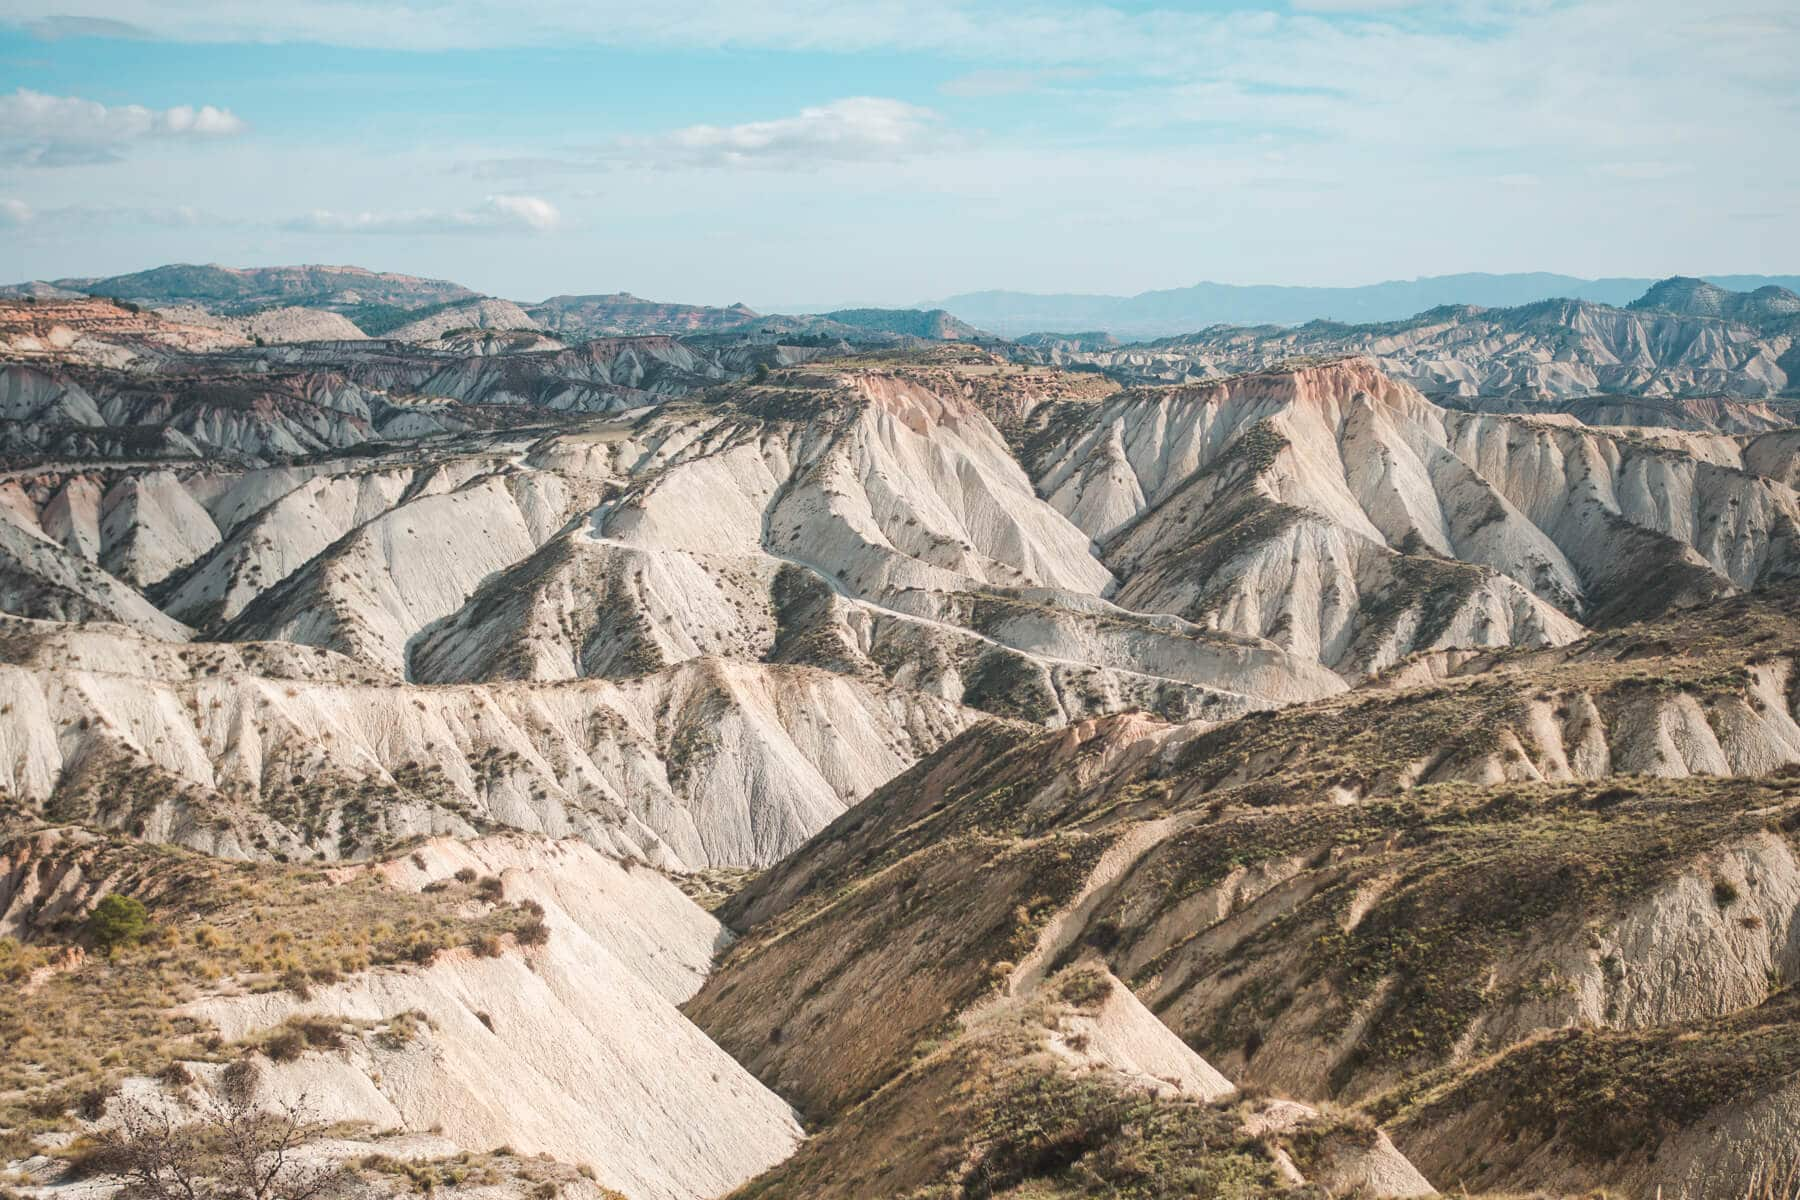 Barrancos de Gebas (also known as the Lunar Badlands) in Murcia, one of Spain's most beautiful natural wonders. One of the top things to do in Spain